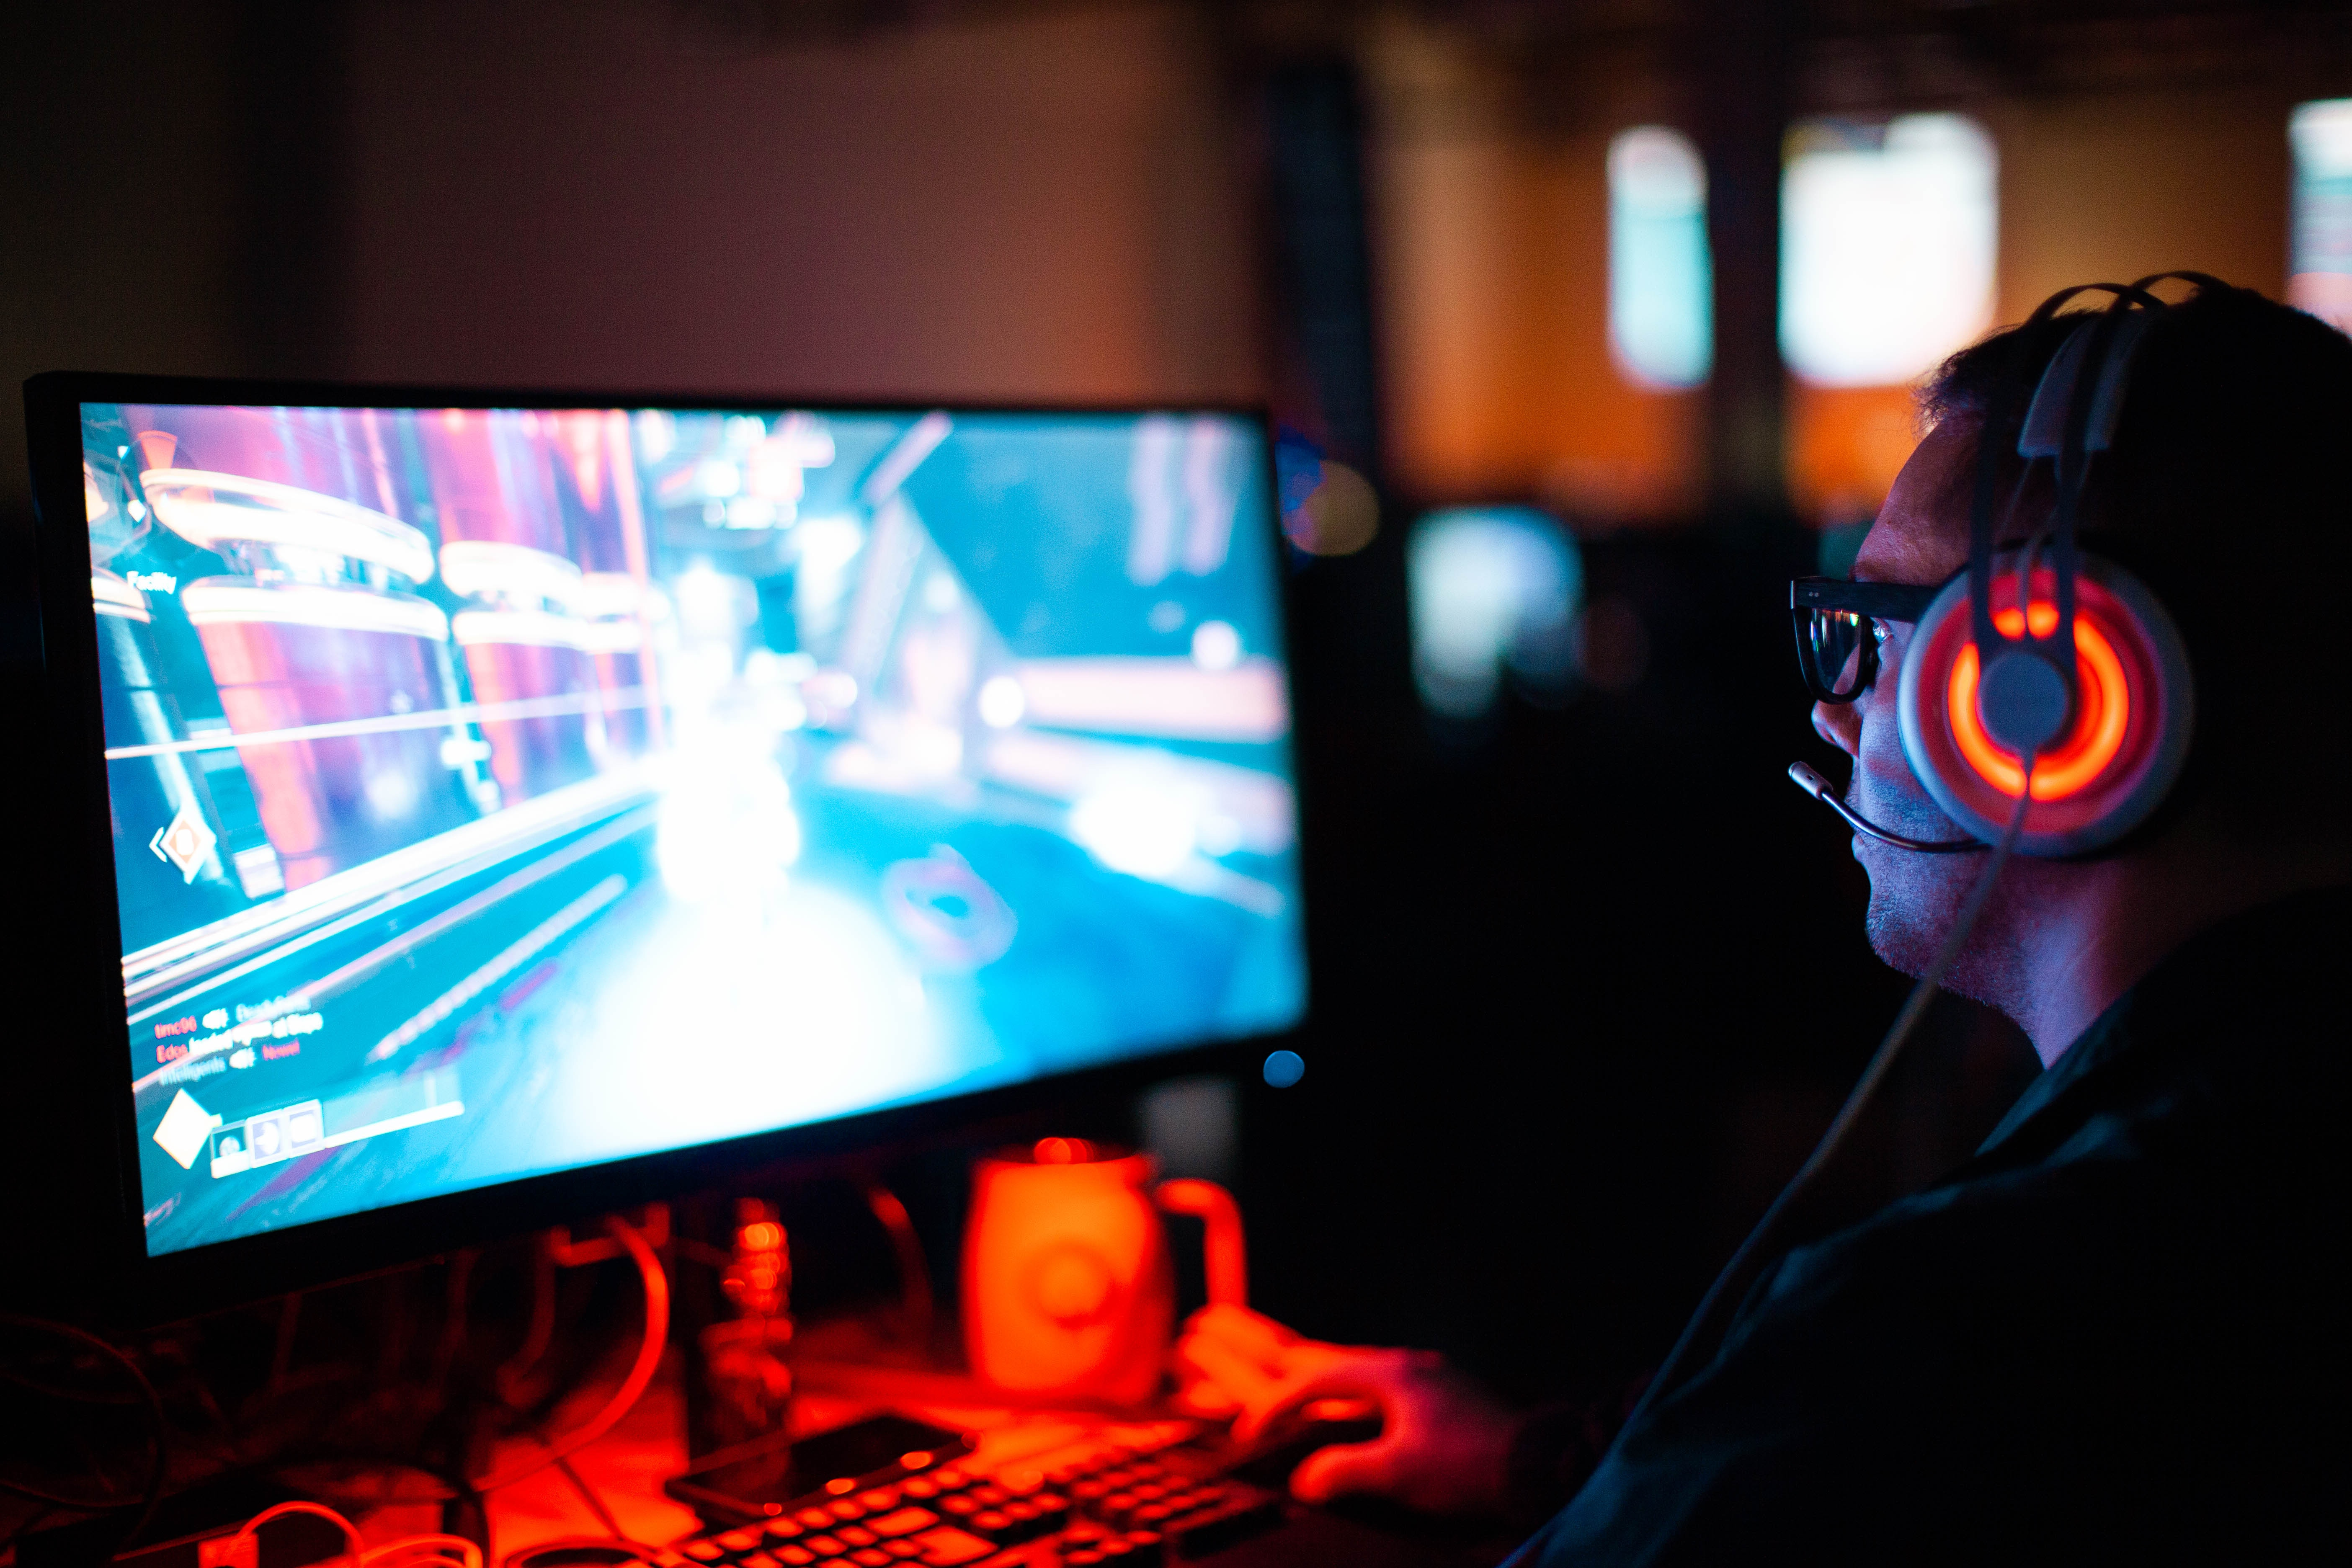 An in-depth review of the best gaming monitors available in 2018.